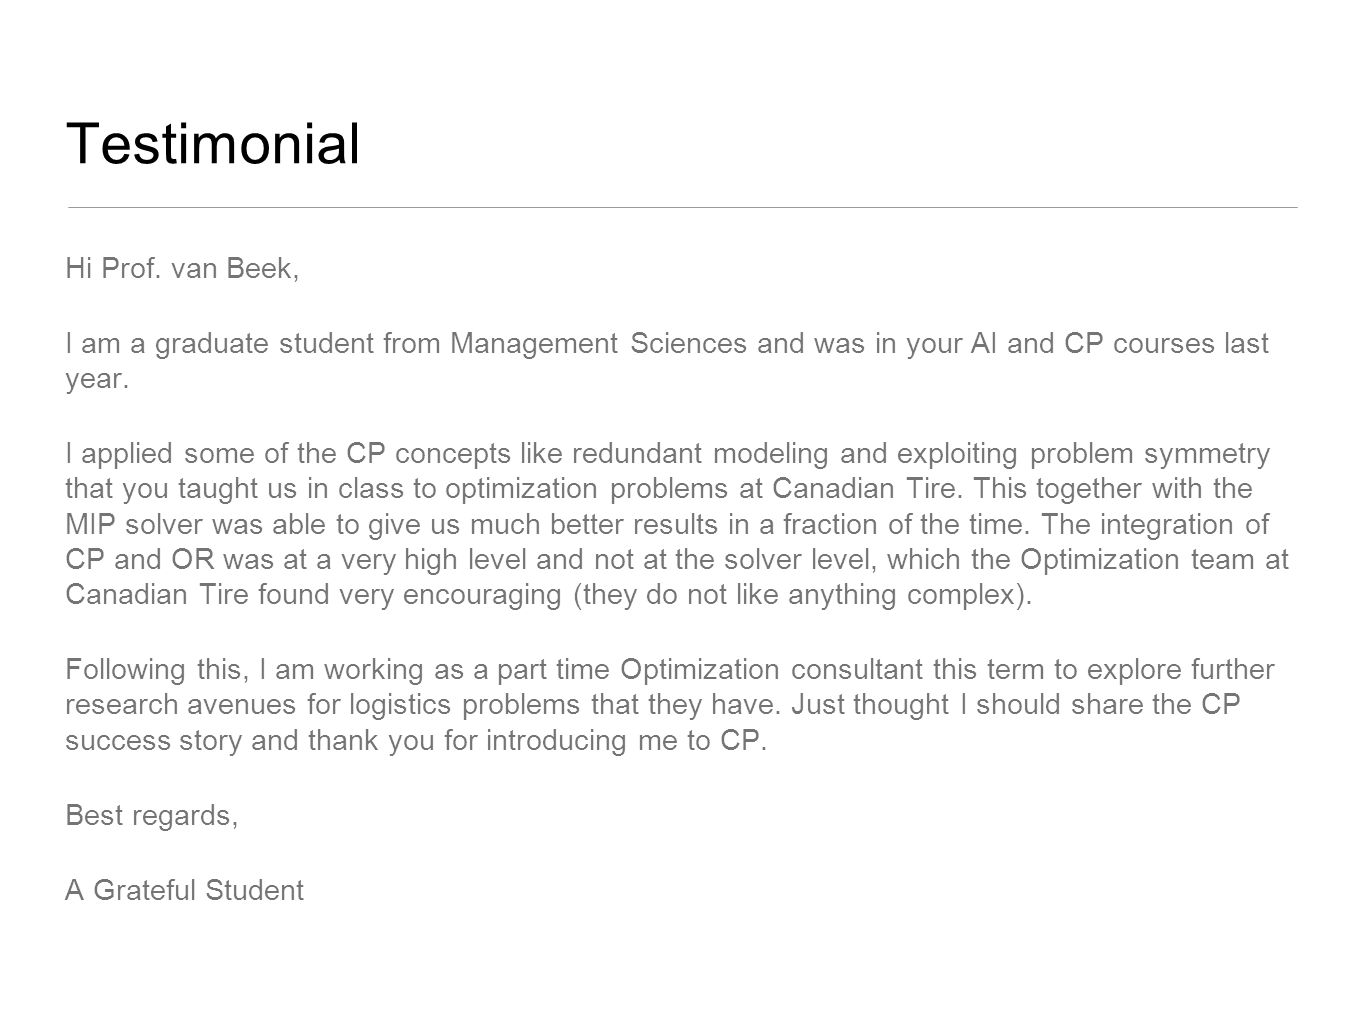 Testimonial Hi Prof. van Beek, I am a graduate student from Management Sciences and was in your AI and CP courses last year. I applied some of the CP